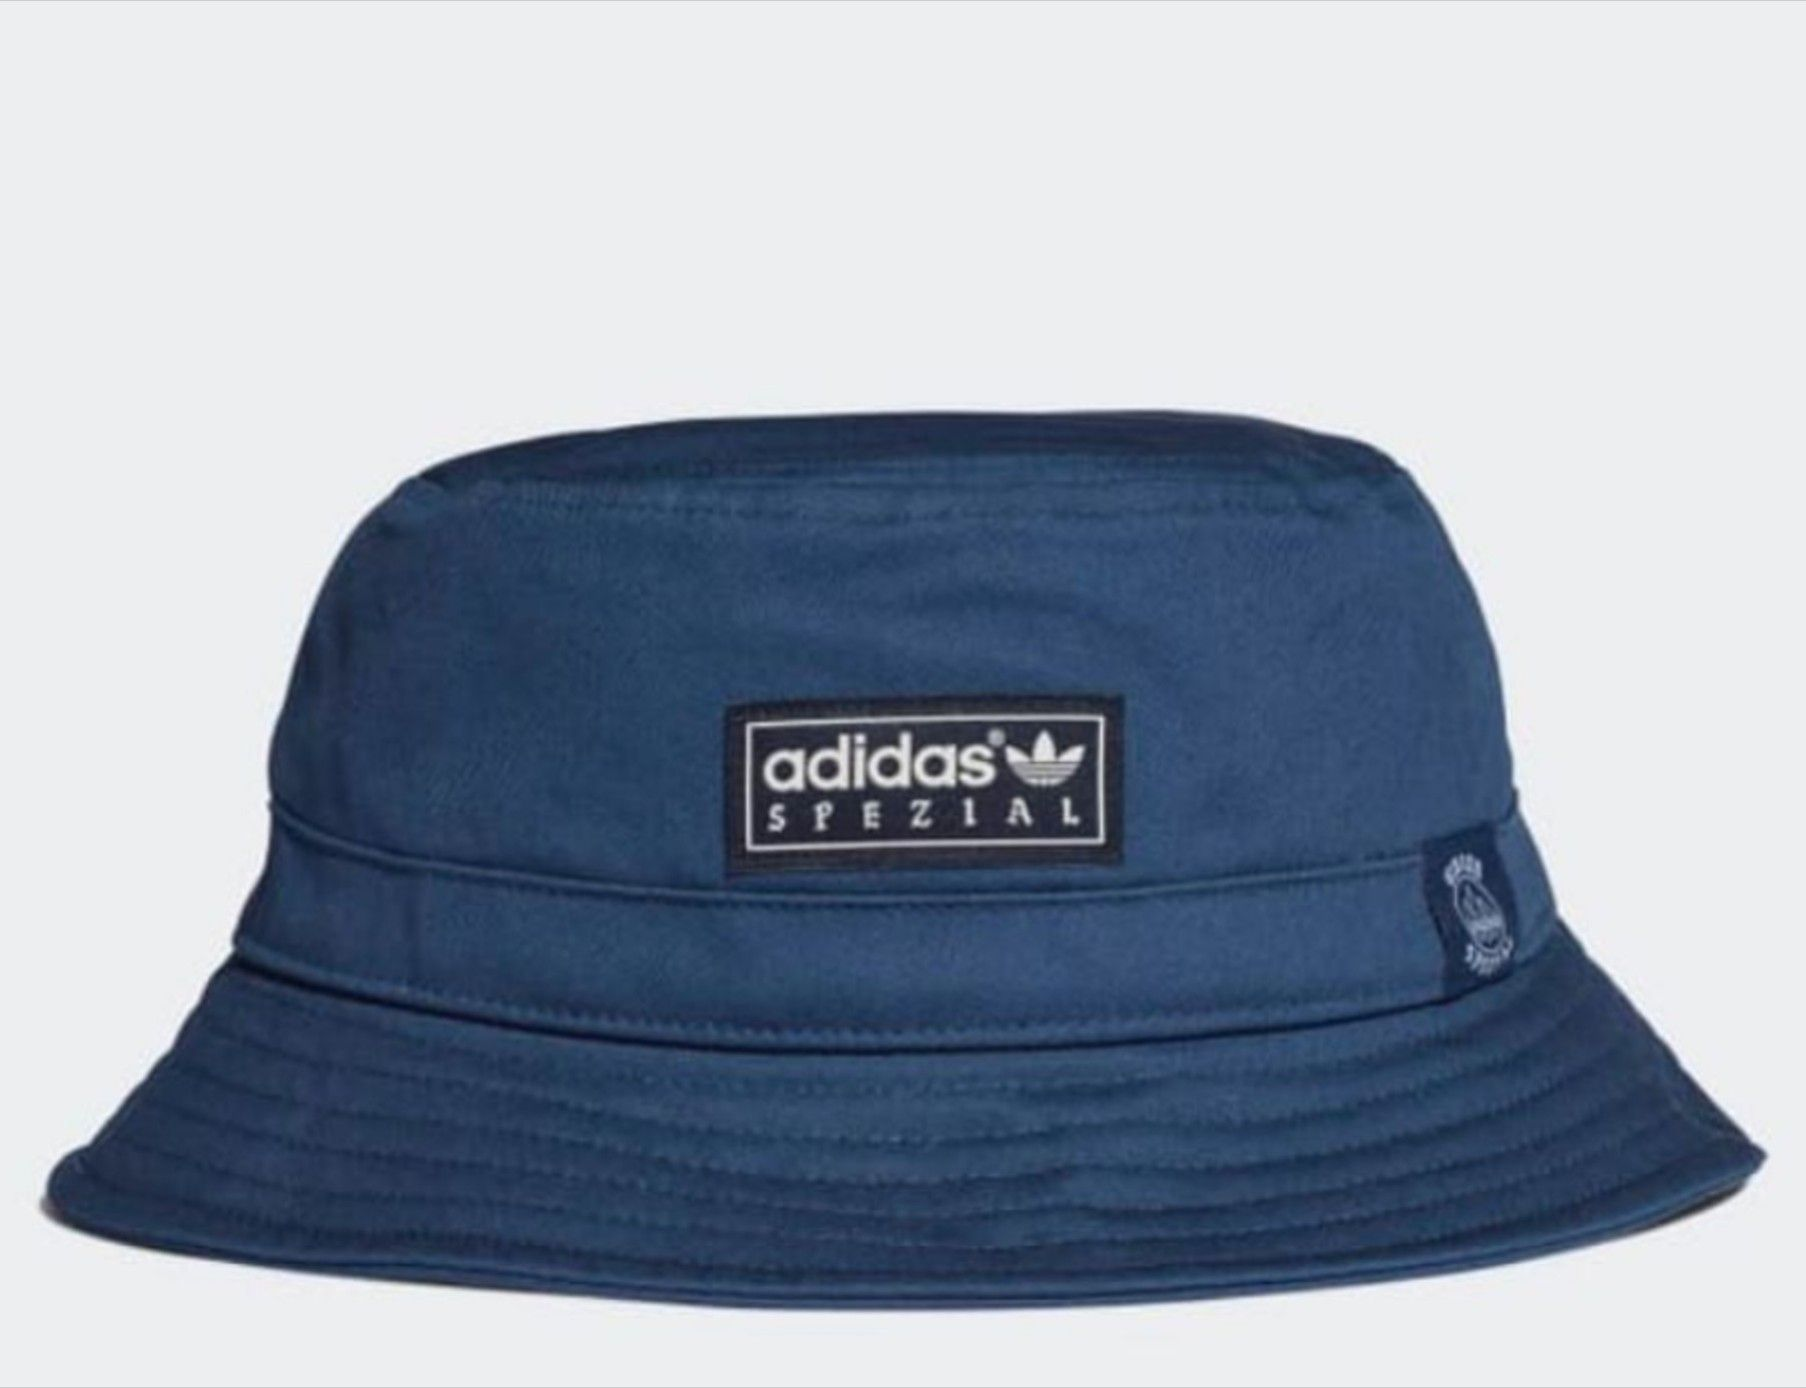 28df7fe365b Adidas Spezial - Union collab bucket hat - sweet